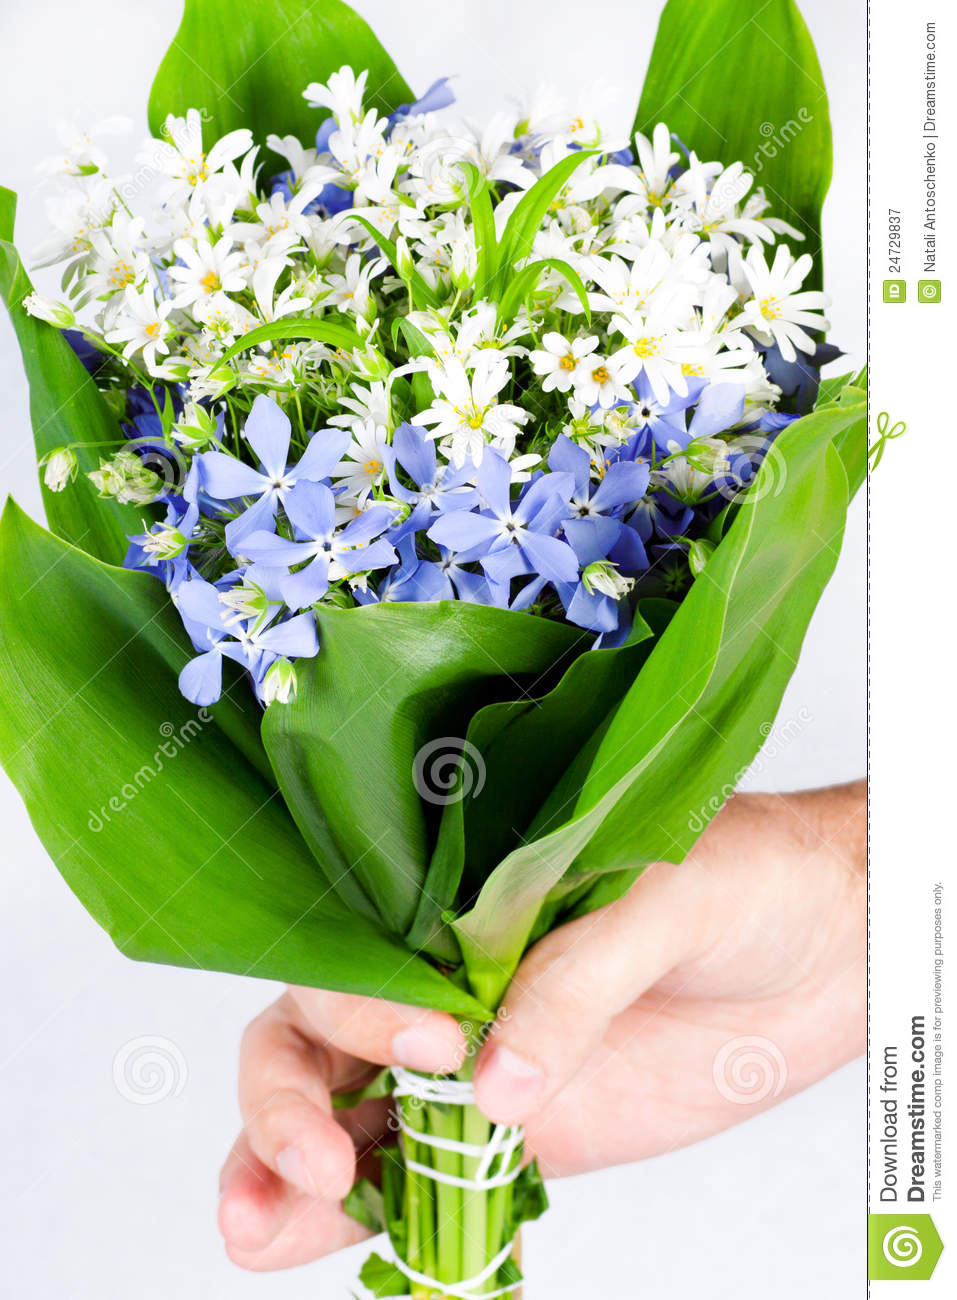 Hand giving a bouquet of spring flowers stock image image of herb hand giving a bouquet of spring flowers herb freshness izmirmasajfo